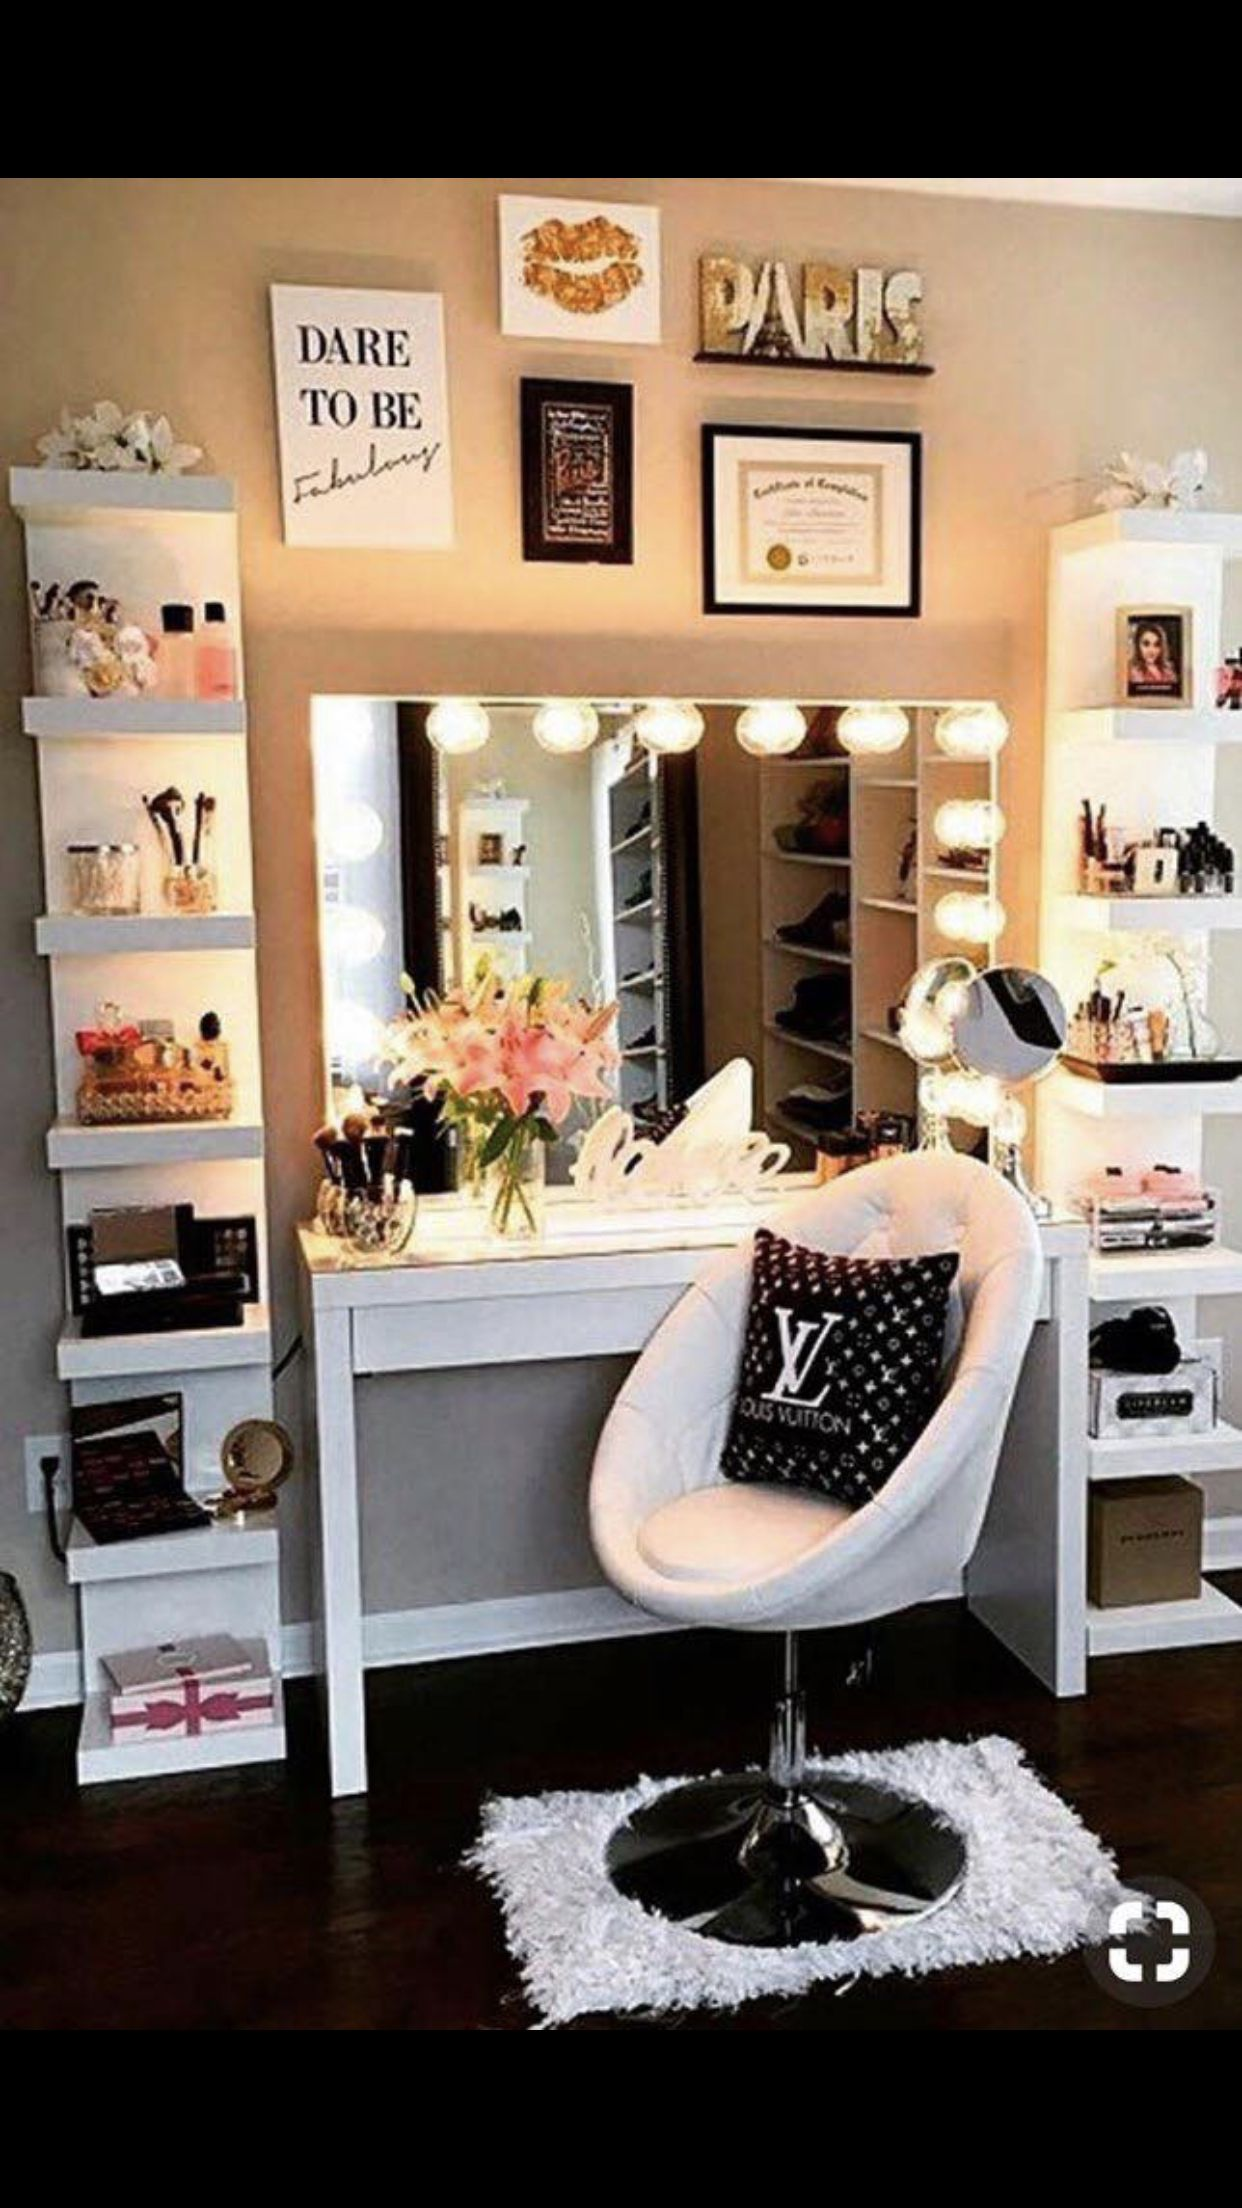 Pin By Tammy Alexander On Ava Room Ideas Diy Makeup Storage Diy